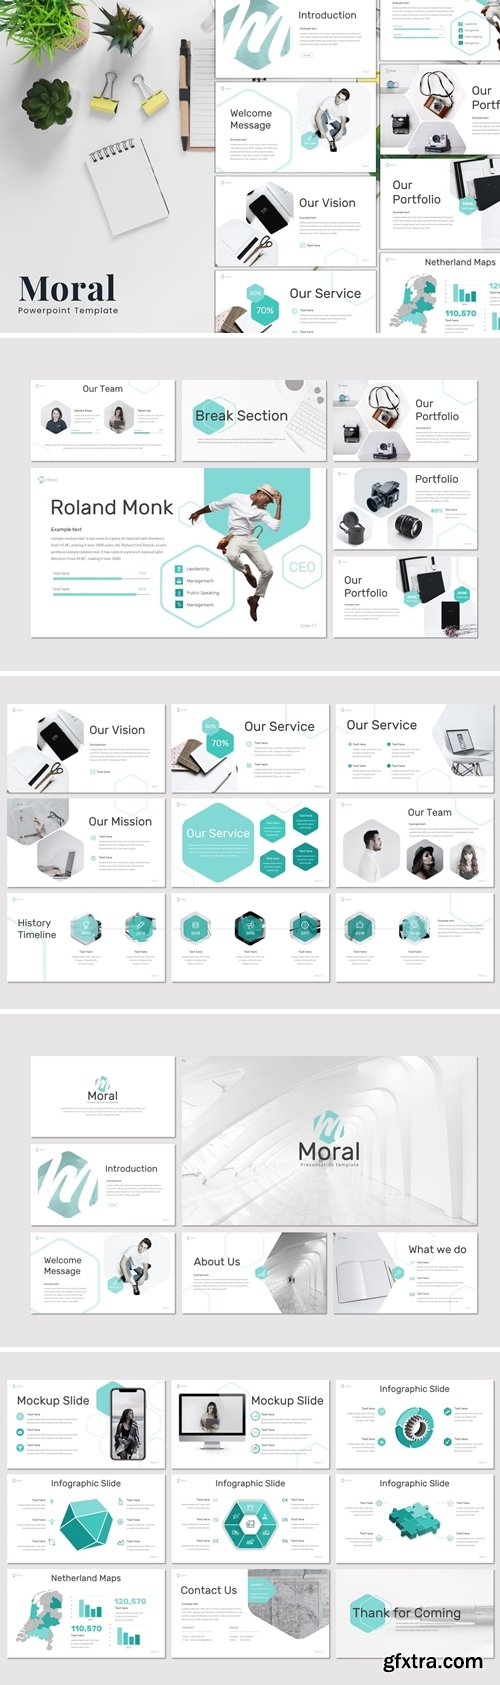 Moral - Powerpoint, Keynote and Google Slides Templates